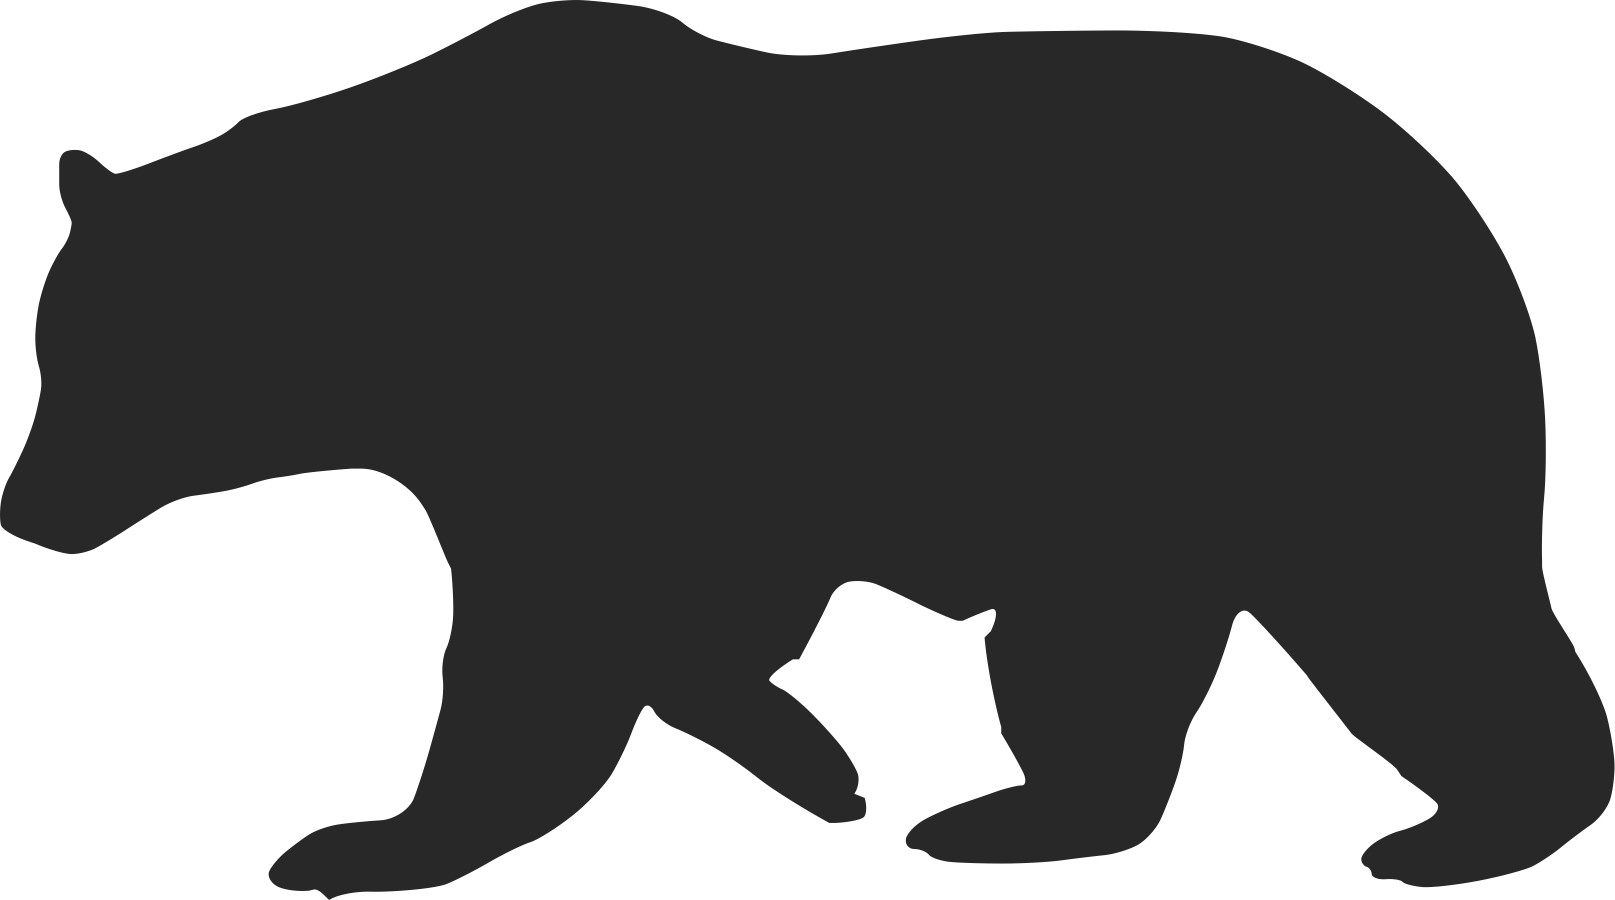 Bear silhouette clipart free clip library Free Black Bear Silhouette Pattern, Download Free Clip Art, Free ... clip library